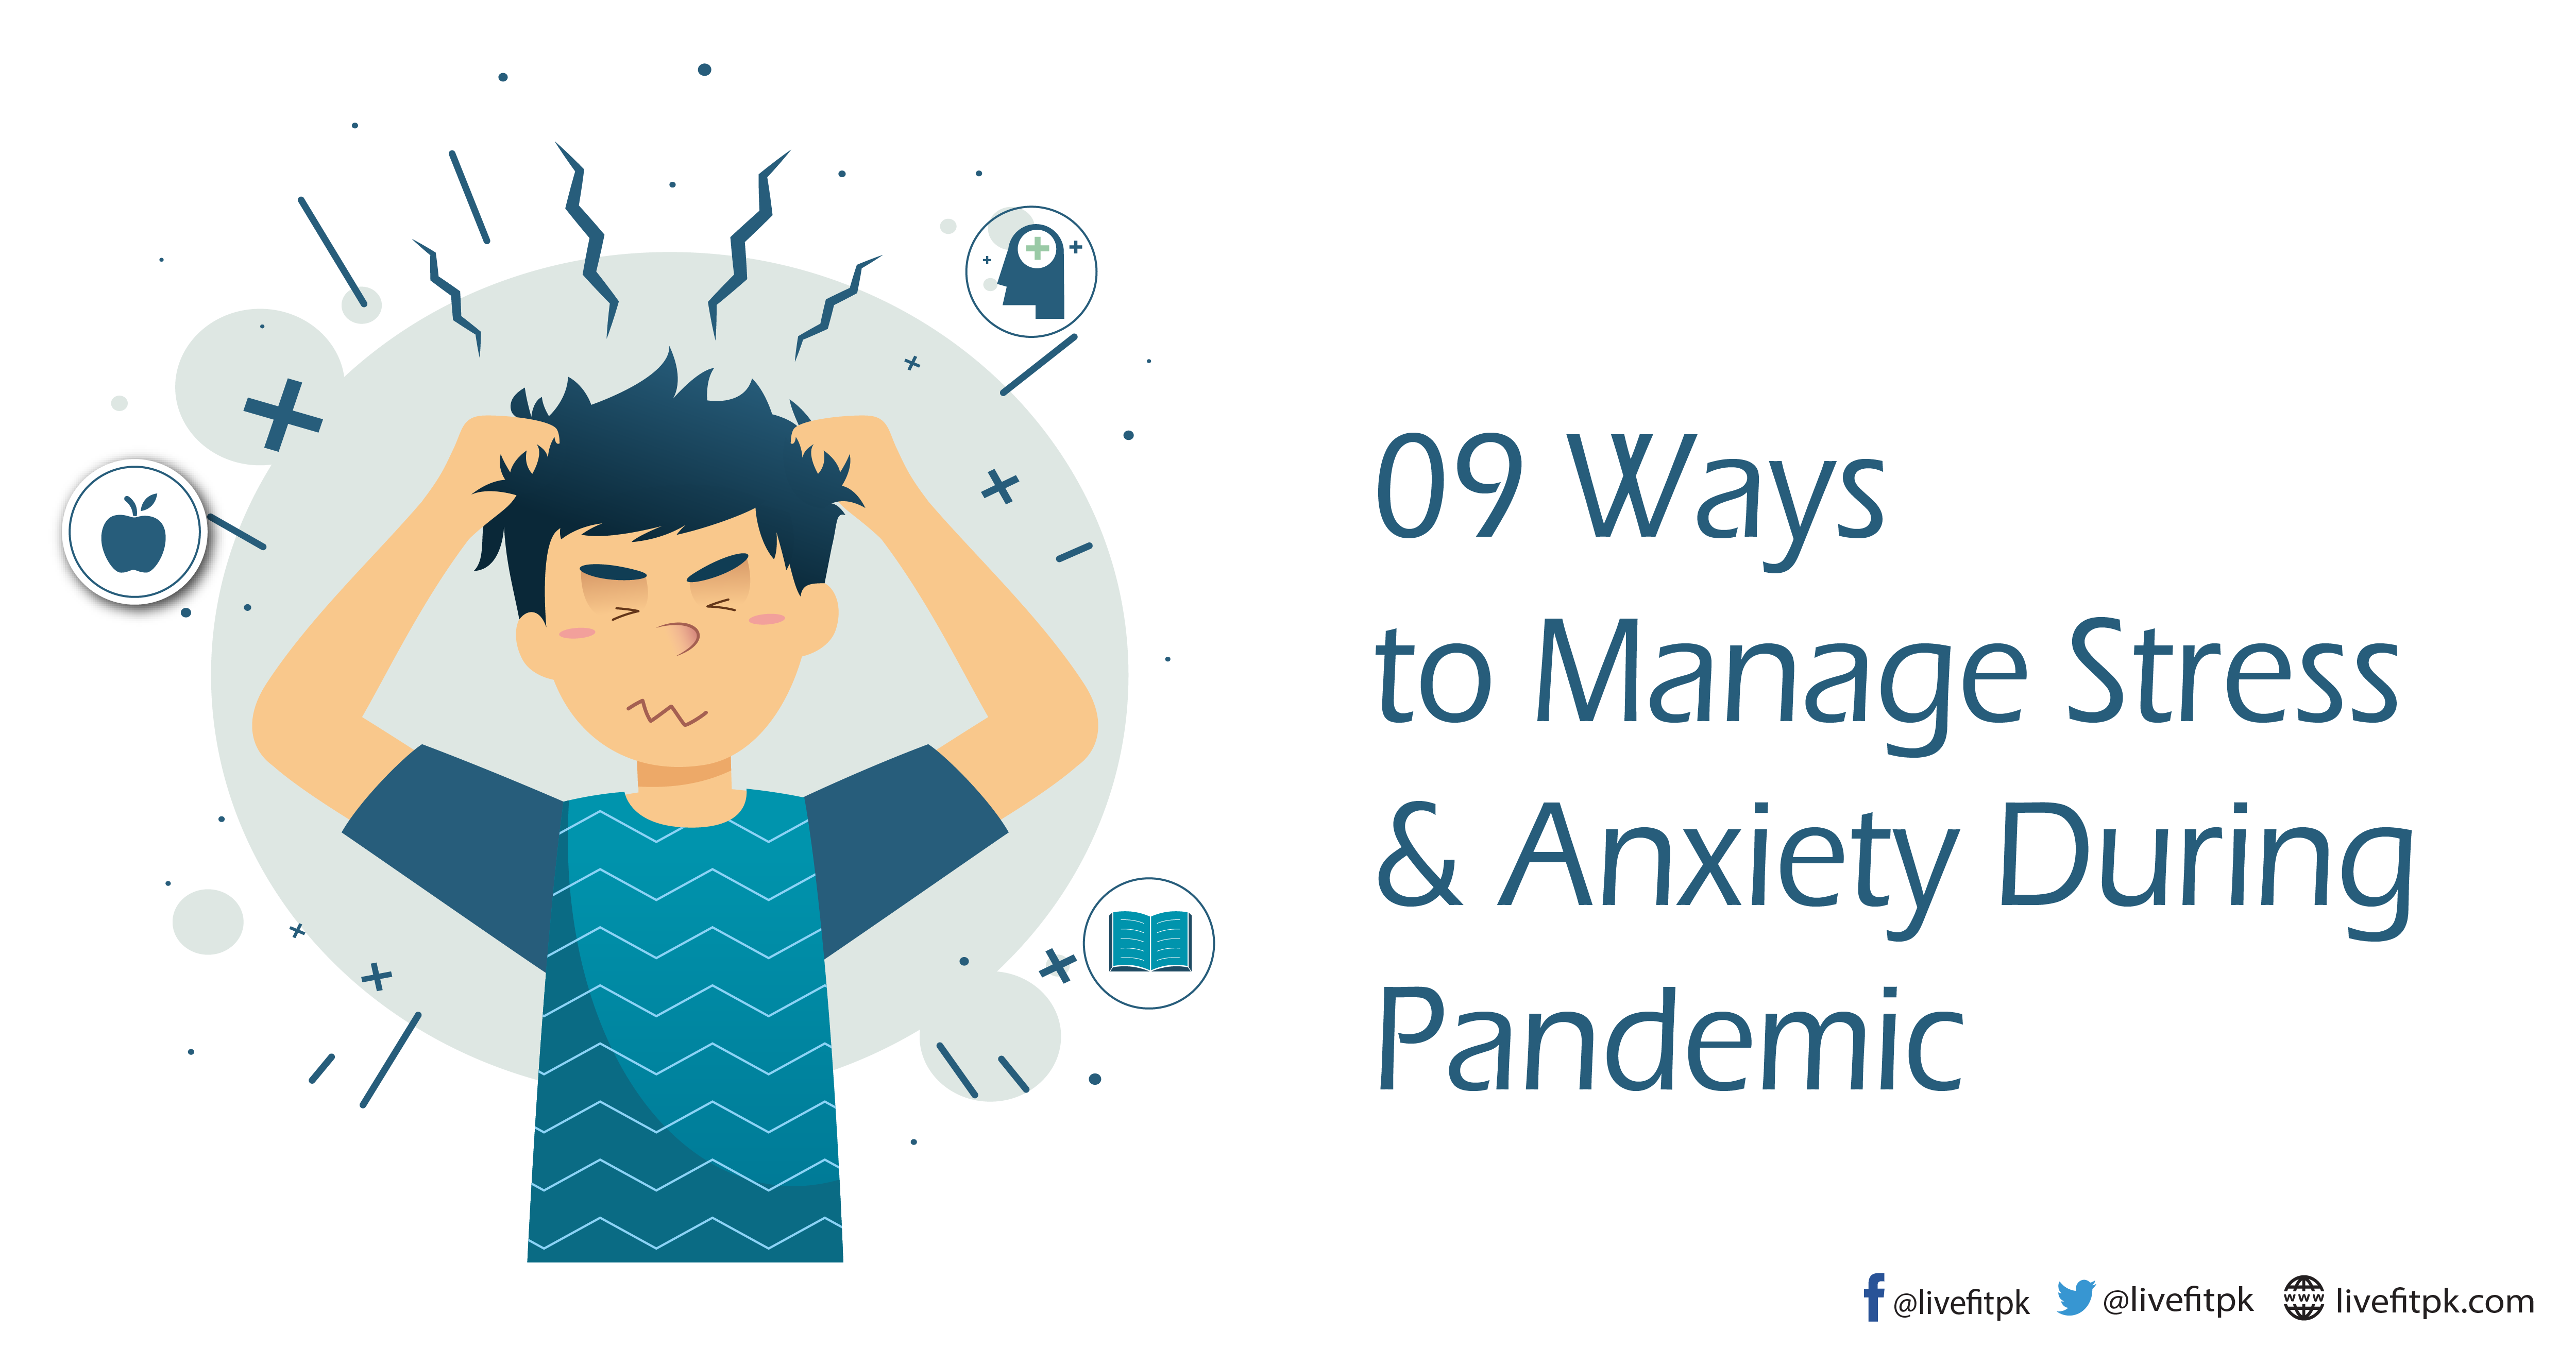 09 Ways To Manage Stress Anxiety During Pandemic Livefitpk